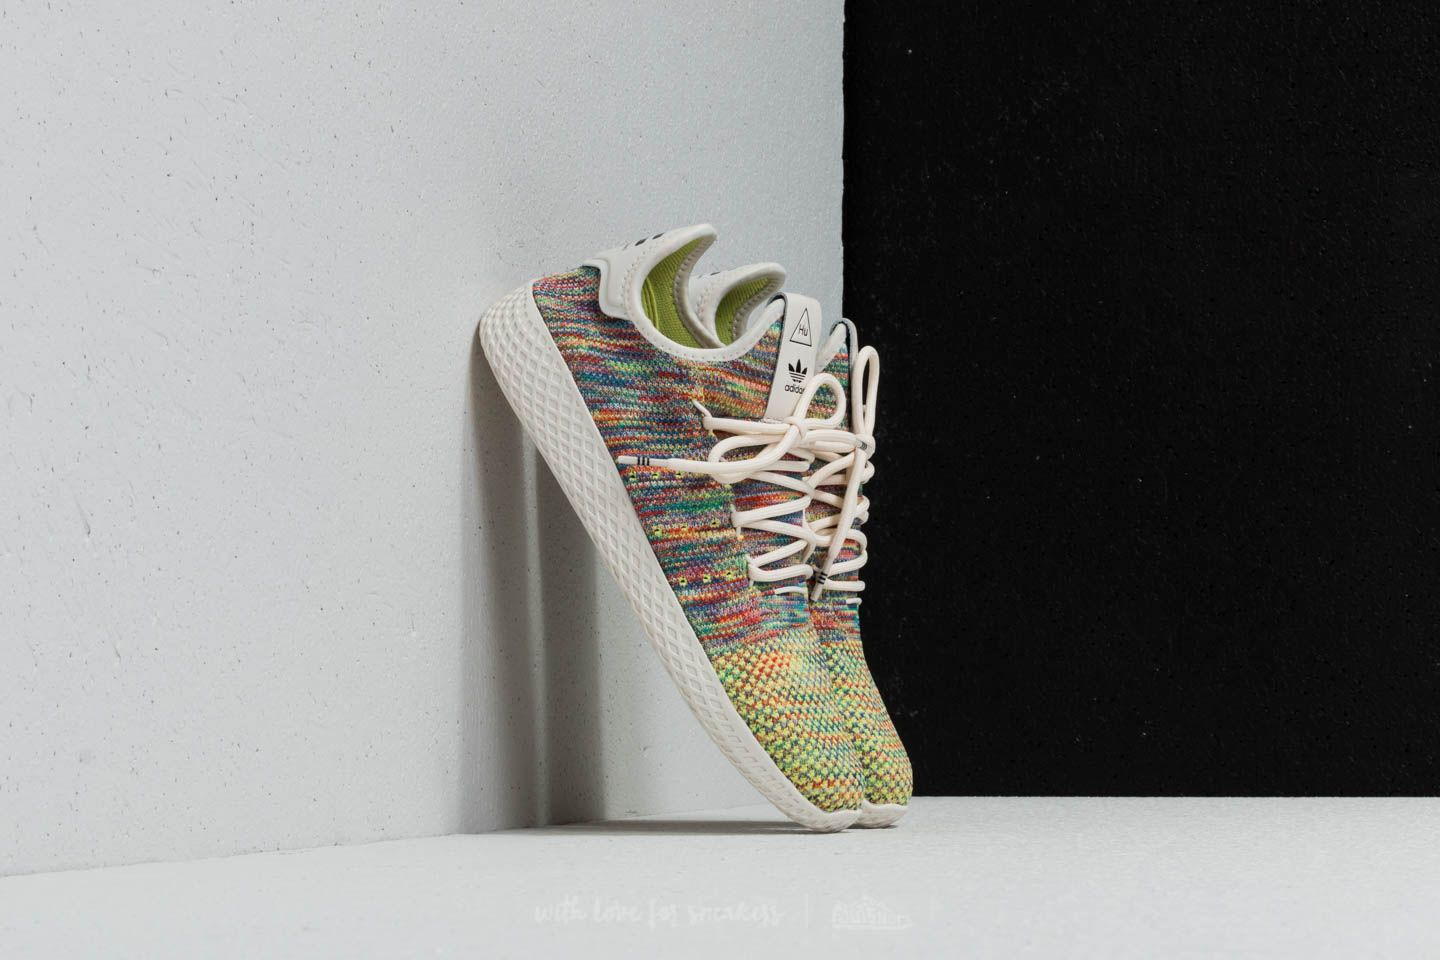 8200c08ec adidas x Pharrell Williams Tennis HU Primeknit Multicolor